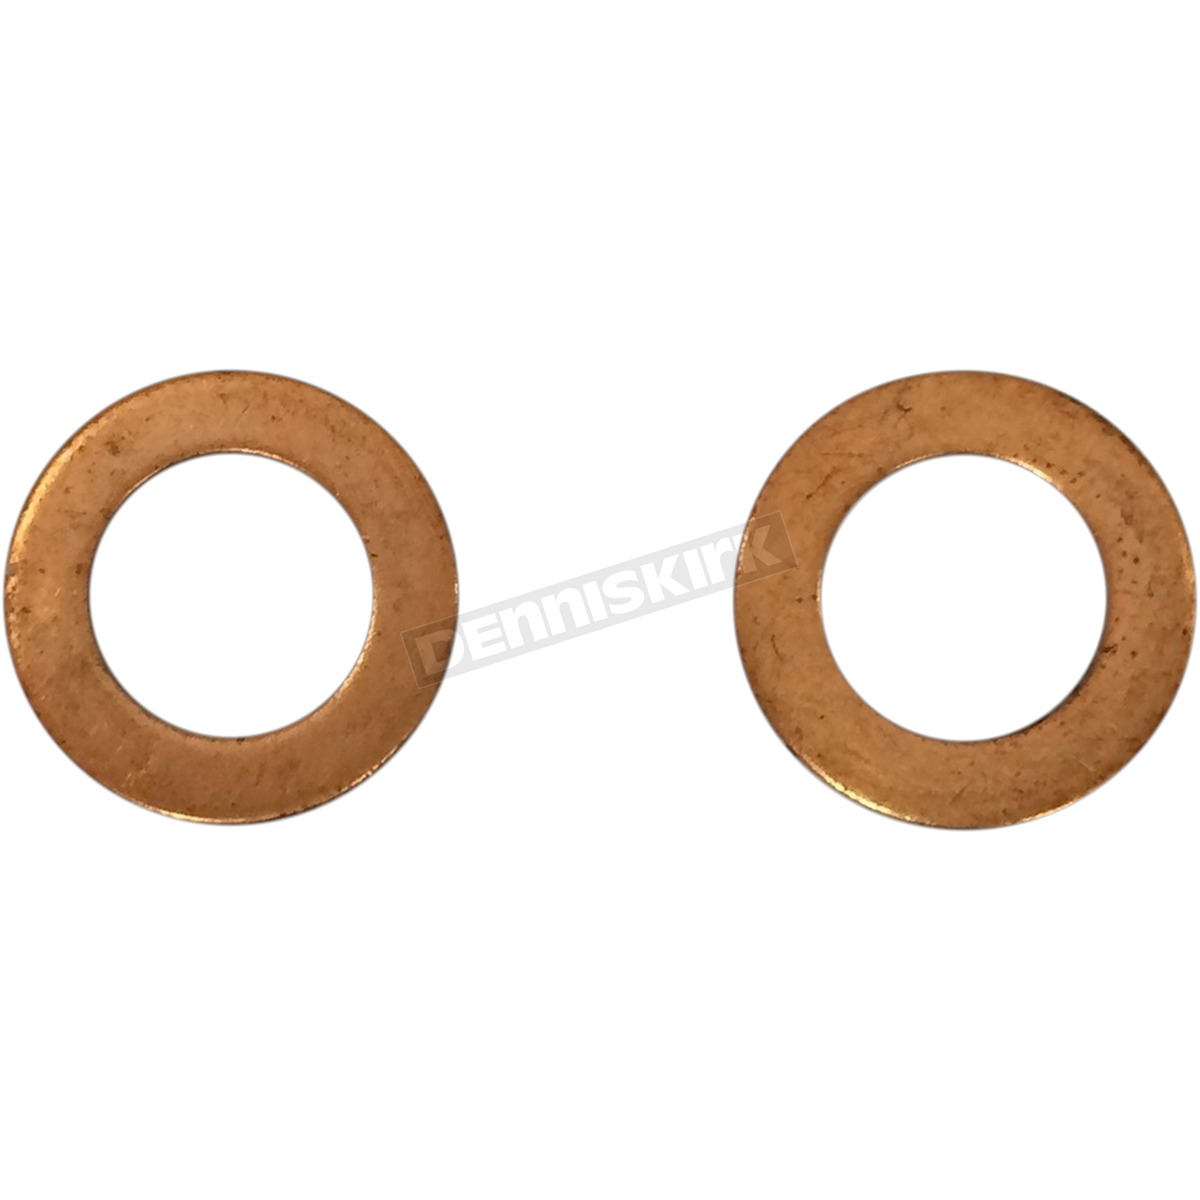 Replacement Washers for Showa Fork Damper Tube Mount Kit Part No  274661 -  0419-0003